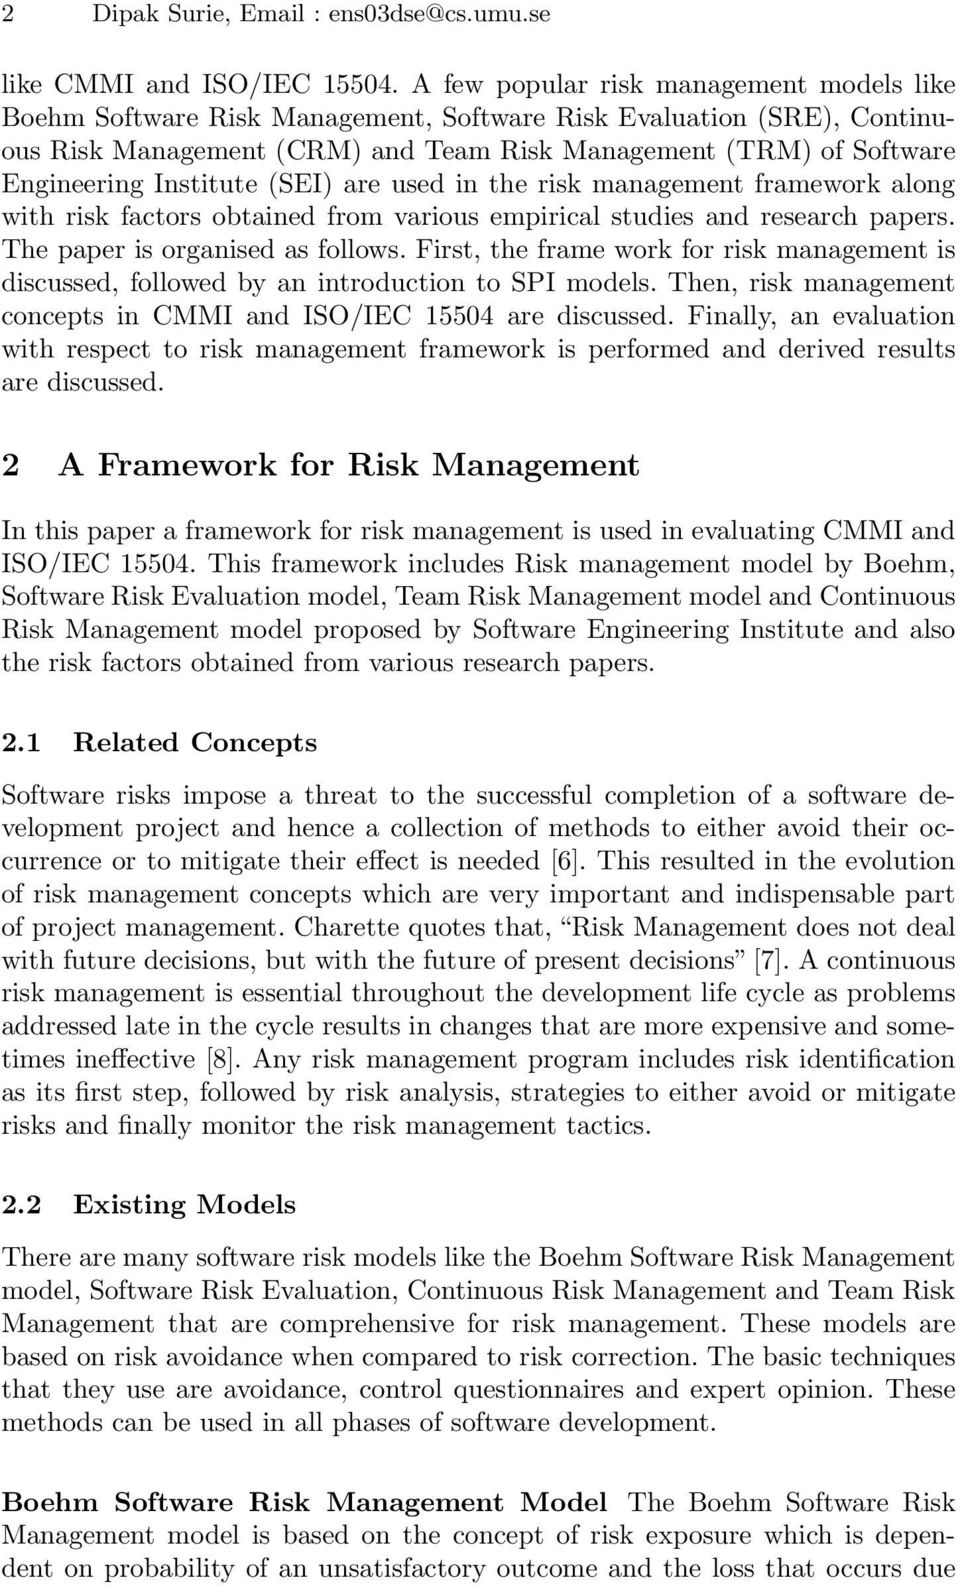 Institute (SEI) are used in the risk management framework along with risk factors obtained from various empirical studies and research papers. The paper is organised as follows.